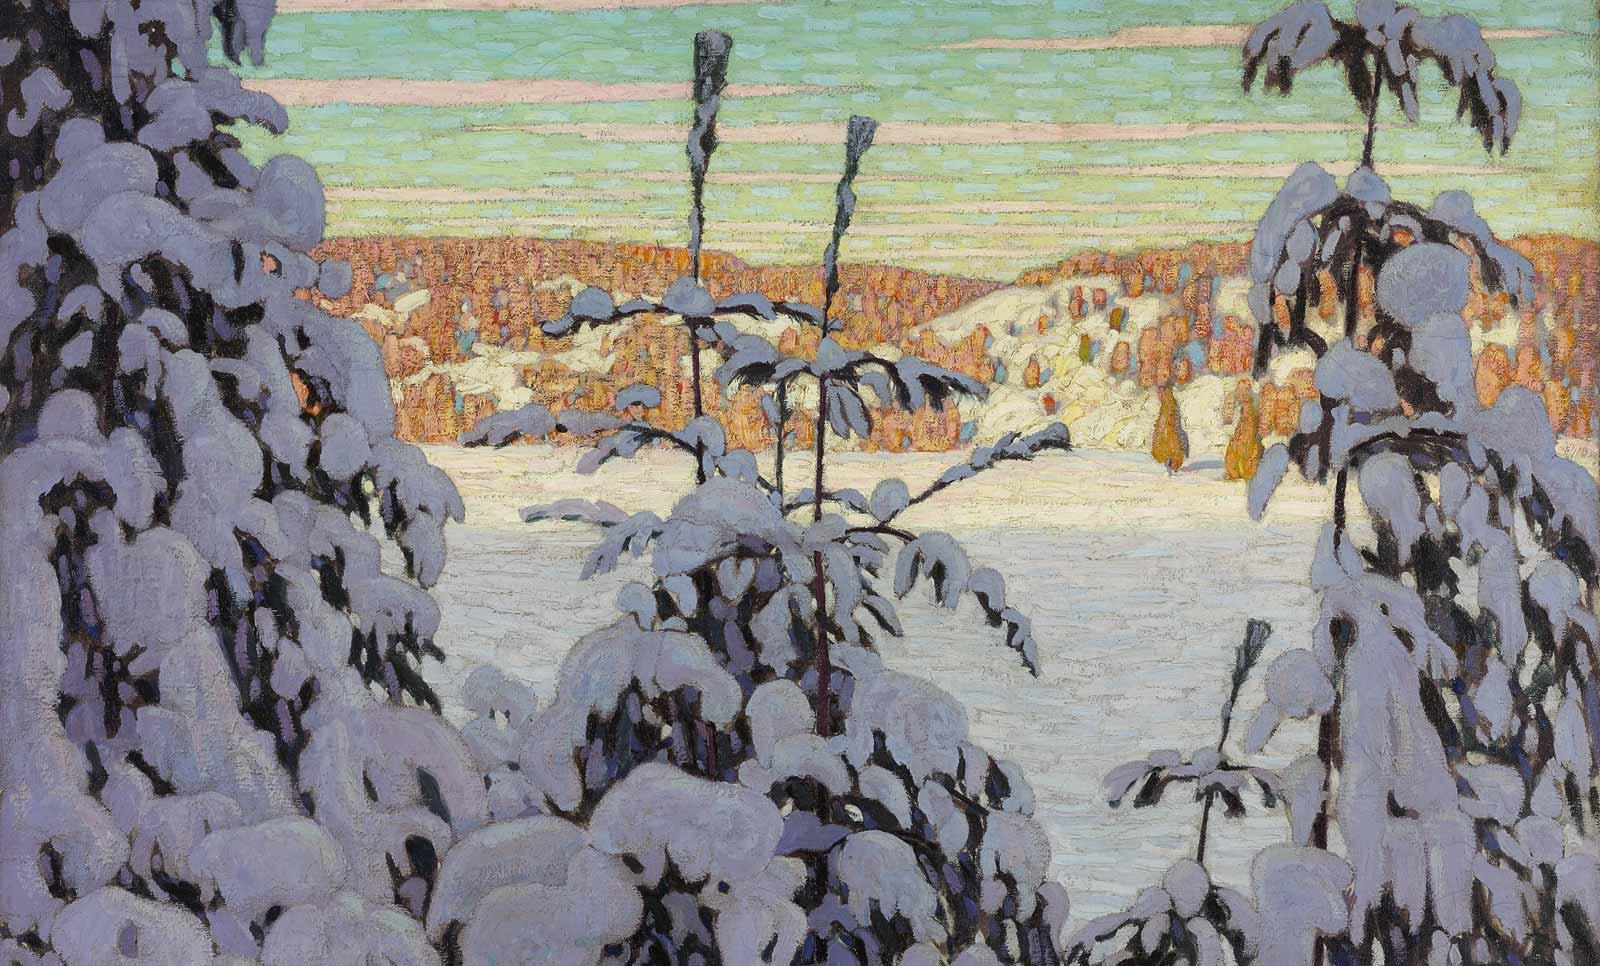 Lawren S. Harris, Snow II, 1915.